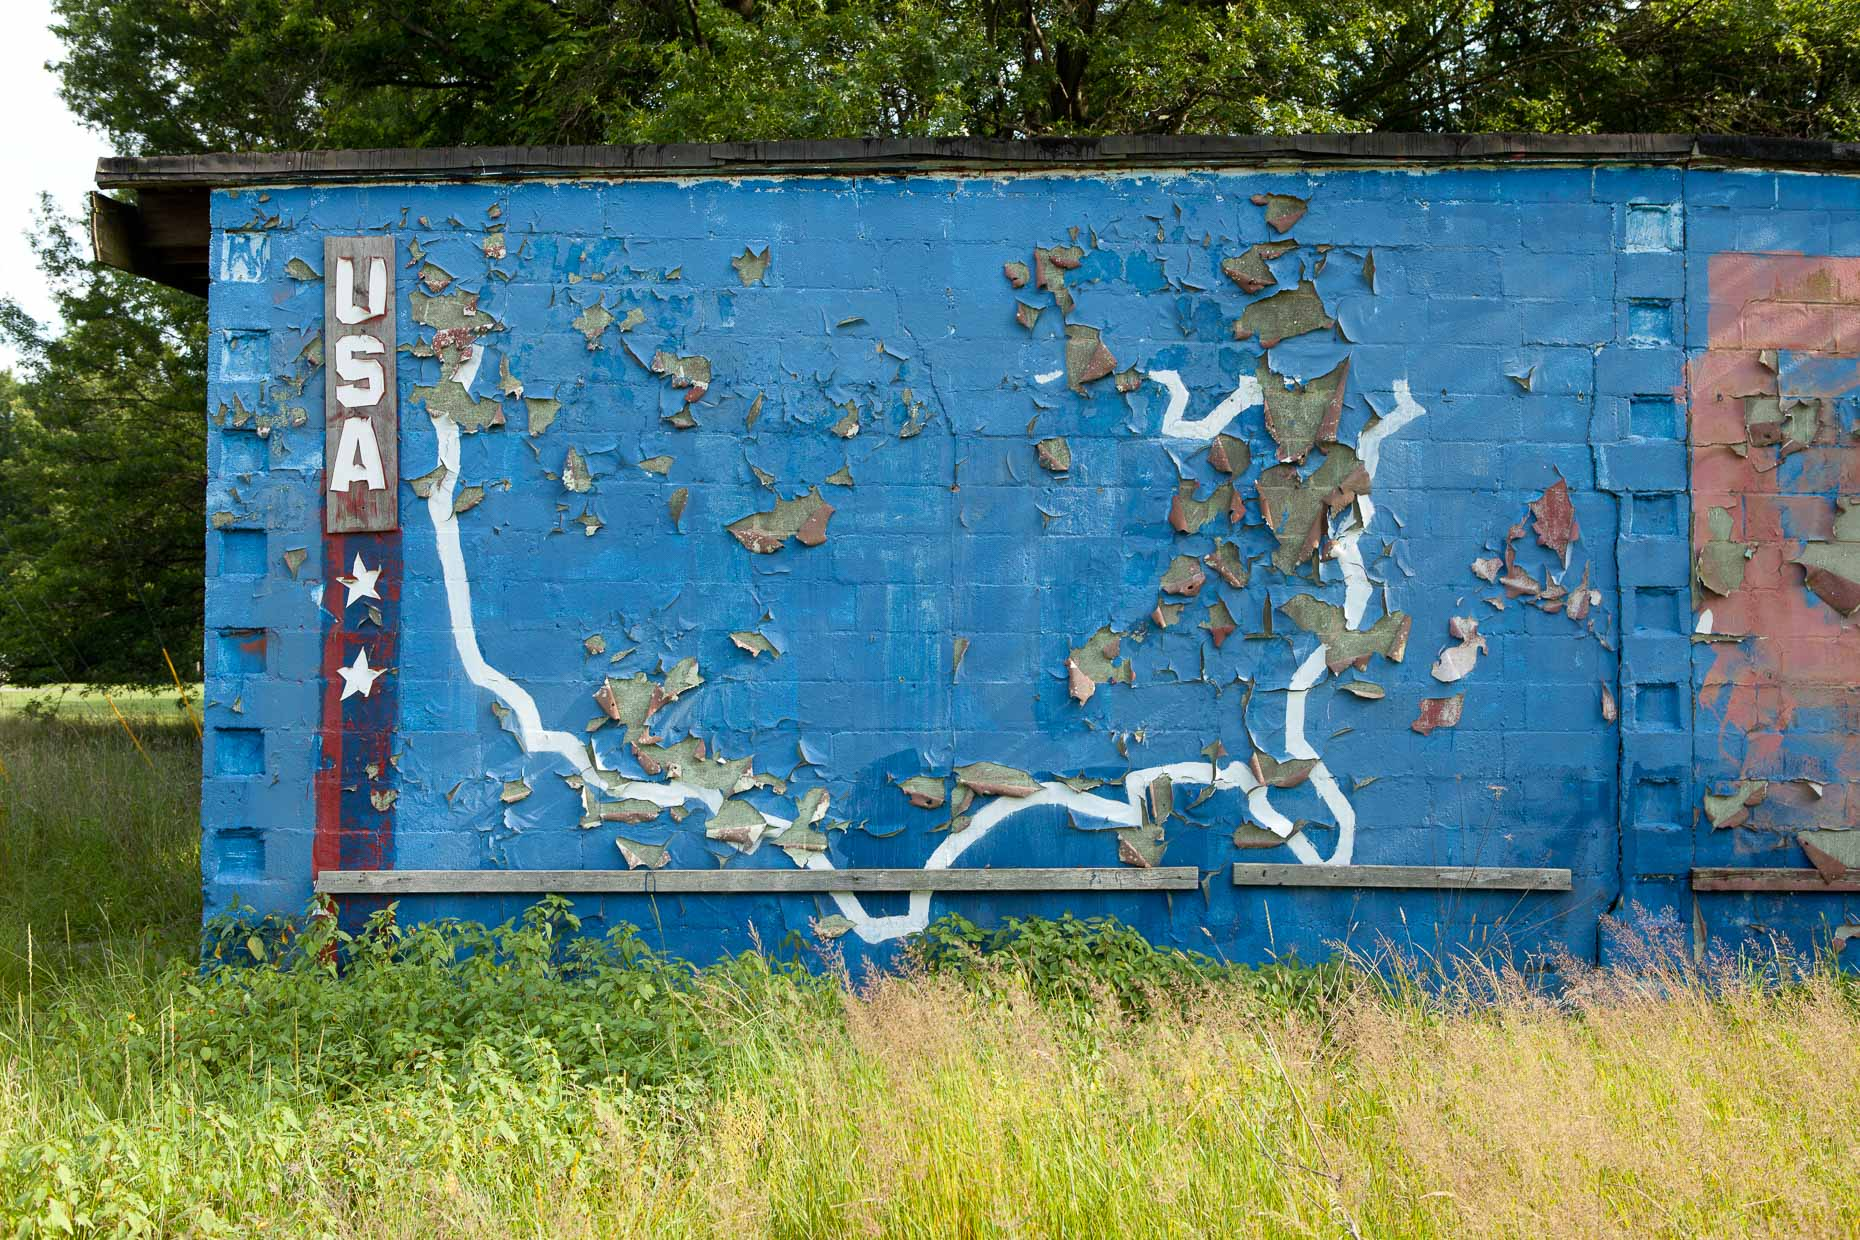 Outline of United States painted on blue wall by David Zaitz